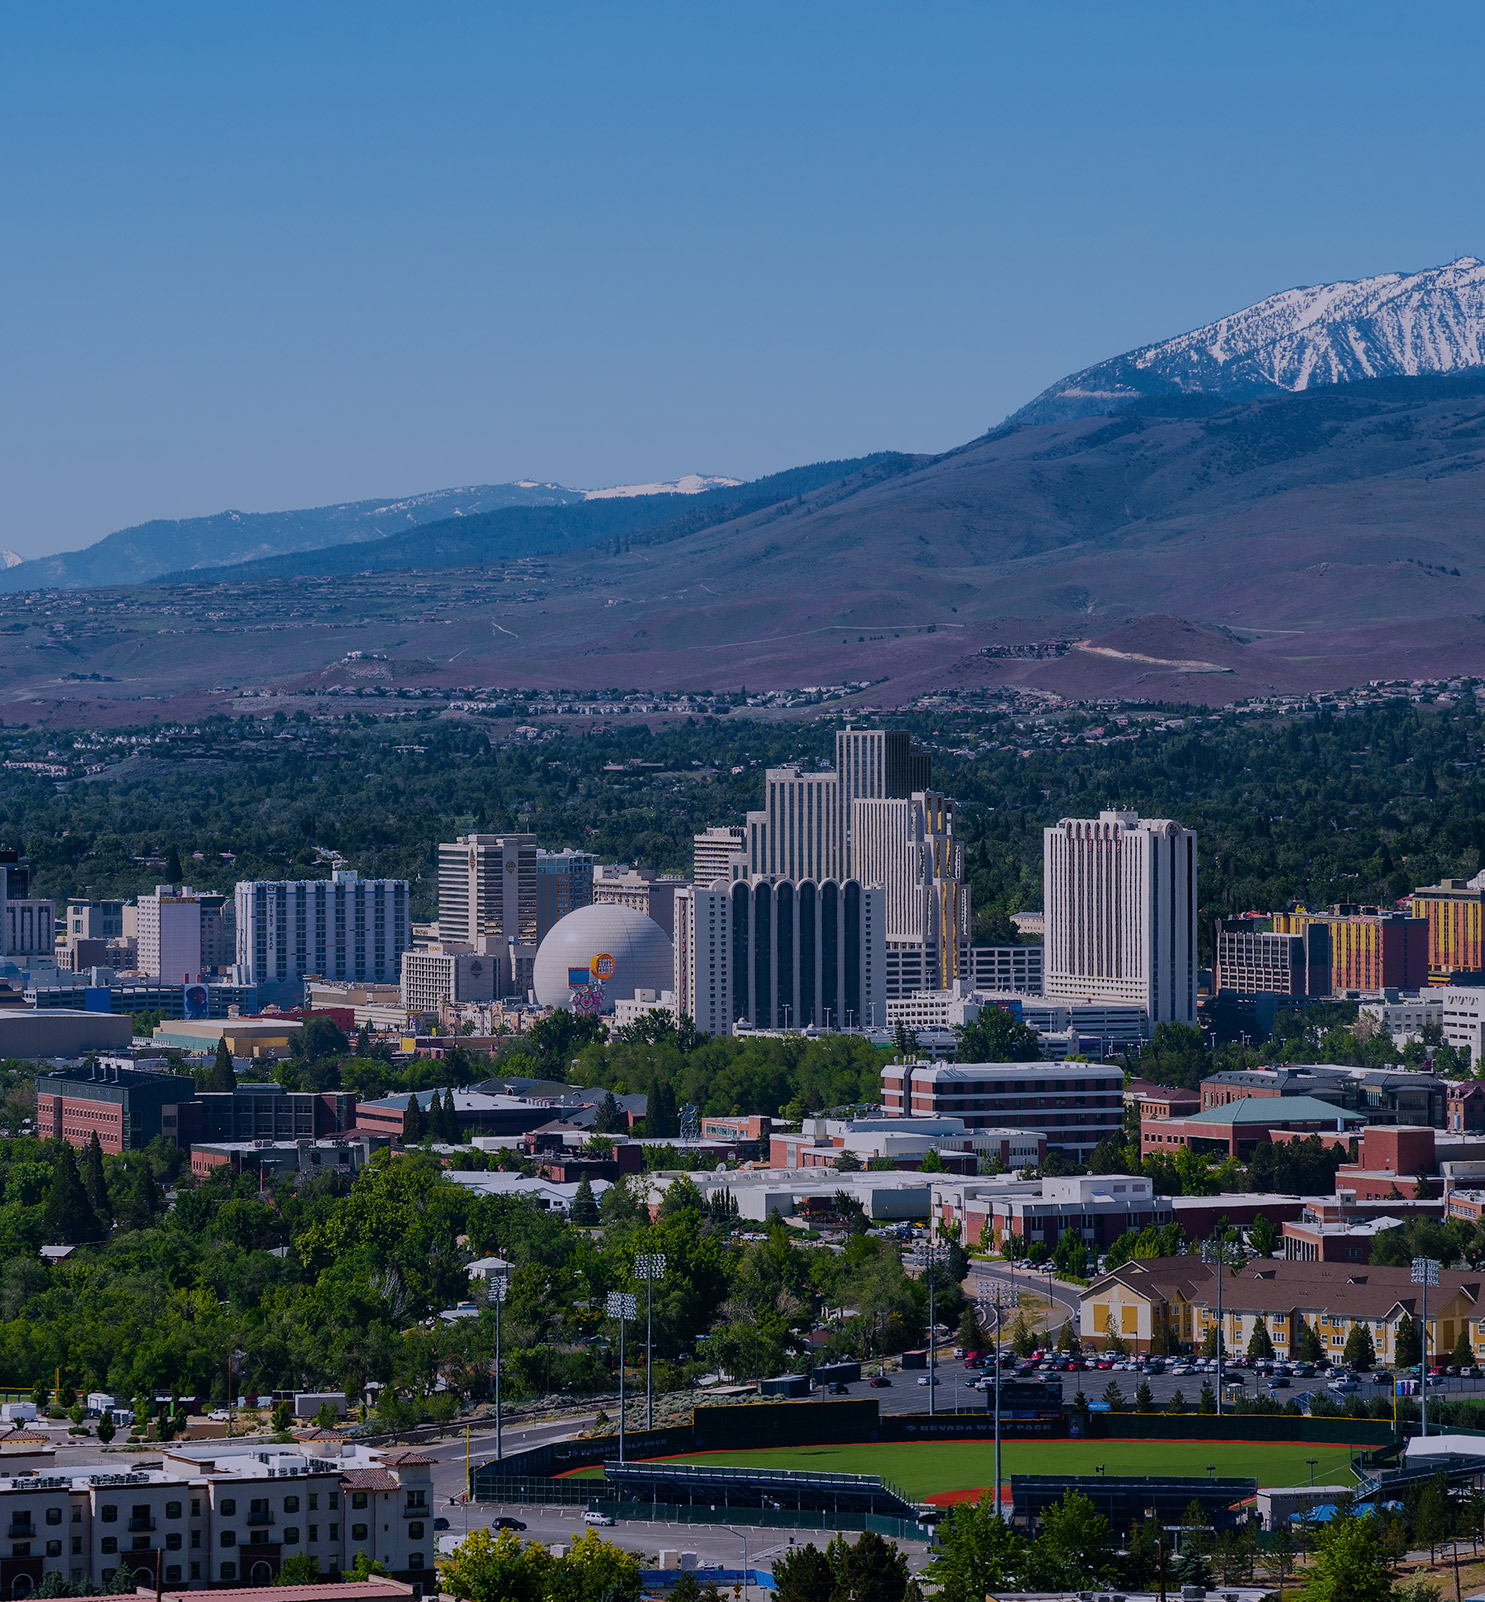 Downtown Reno with snow covered mountains